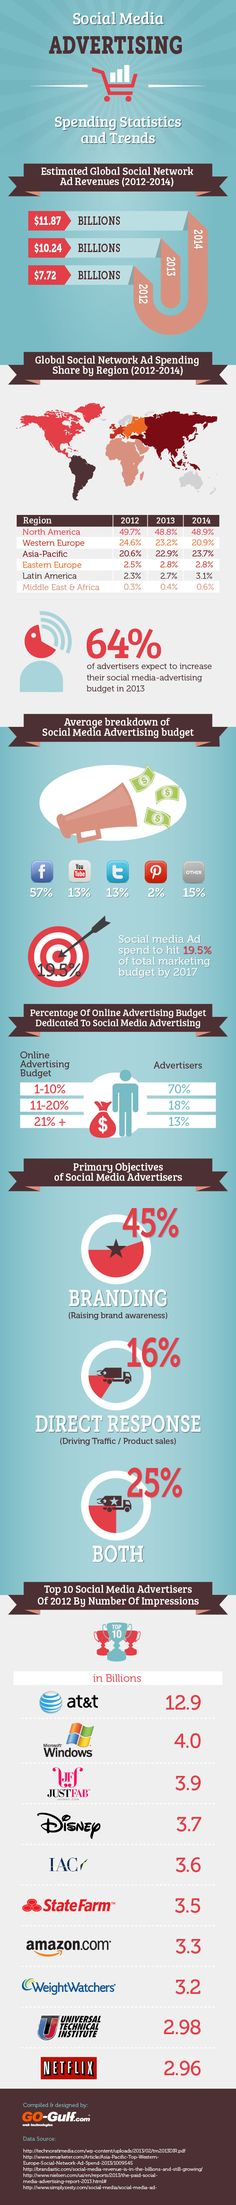 Statistics and Trends in social media advertising. This has got a big buzz today!